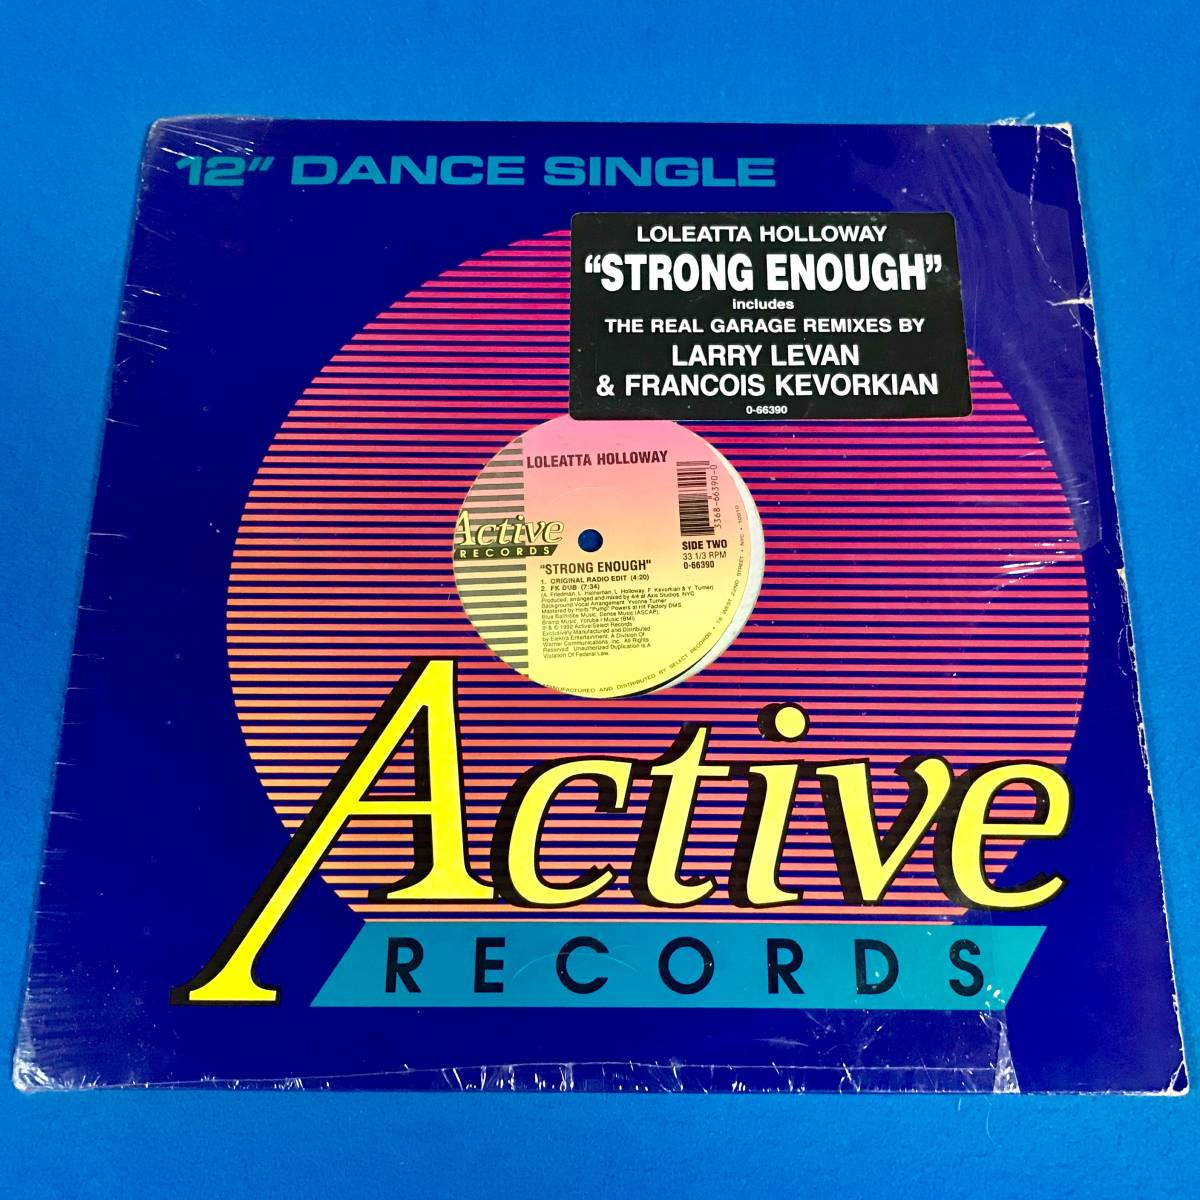 【HOUSE】LOLEATTA HOLLOWAY//STRONG ENOUGH//0-66390//12INCH VINYL/US/FRANCOIS KEVORKIAN/LARRY LEVAN/LOFT/GARAGE_画像1